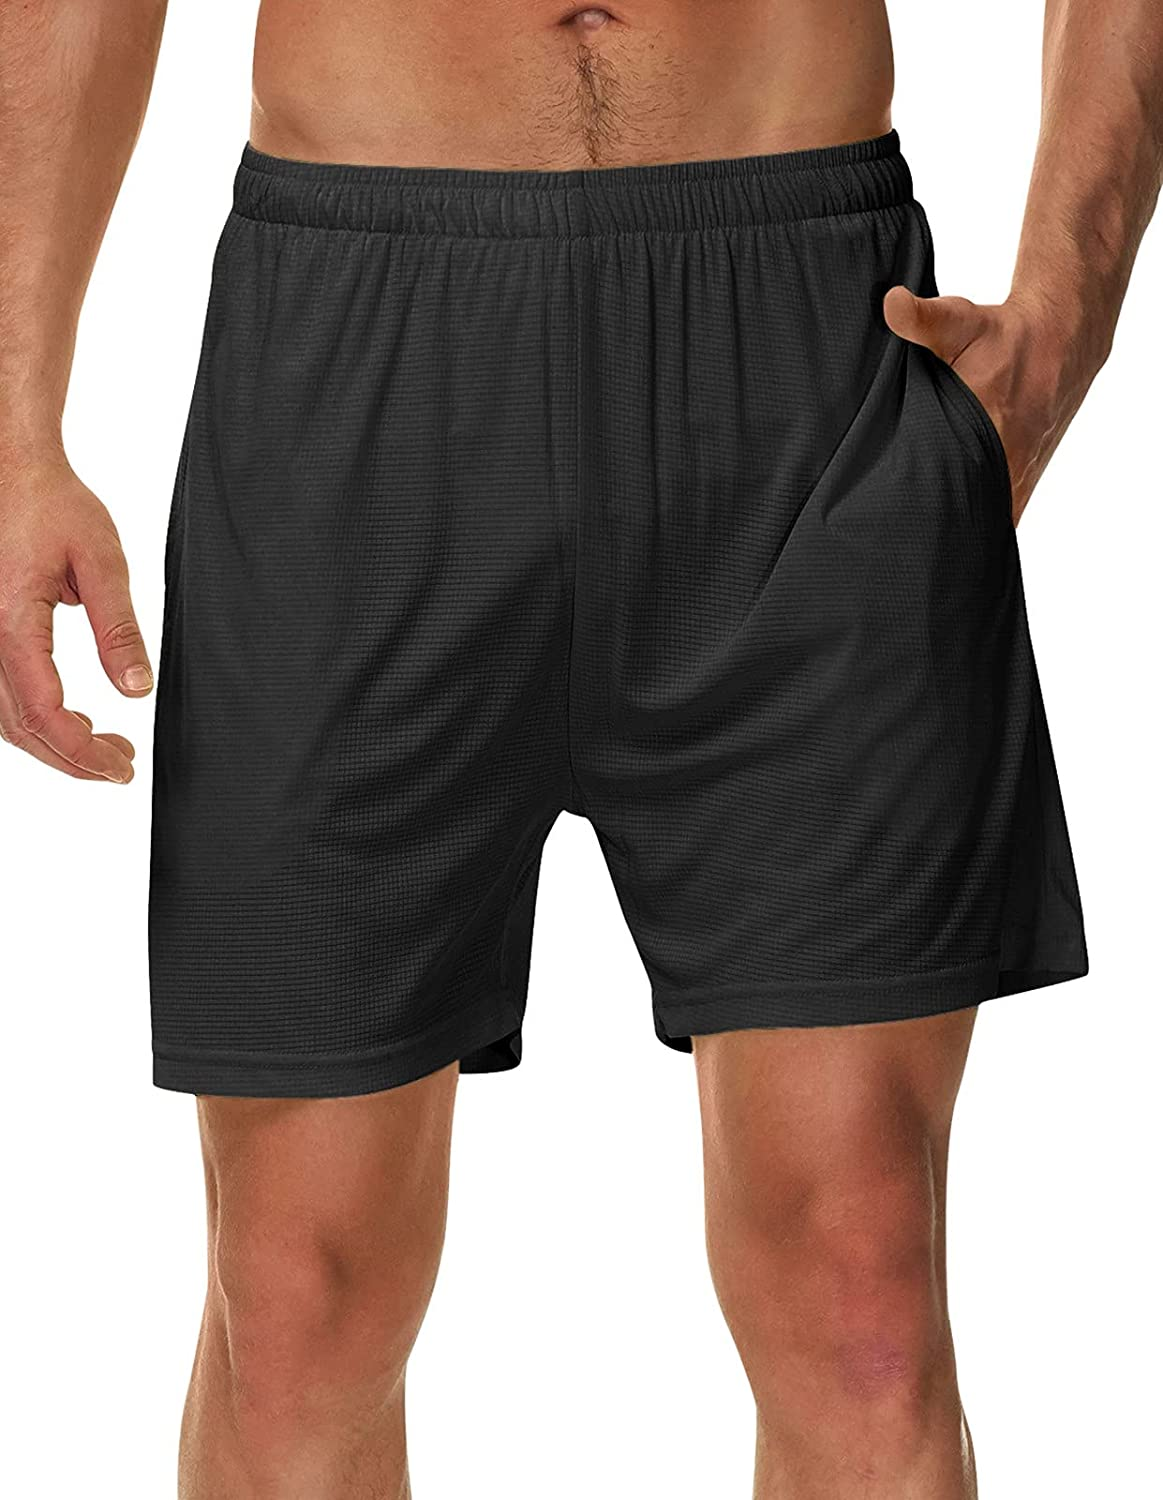 SPECIALMAGIC Men's Running Shorts with Liner 5 Inch Athletic Quick Dry Workout with Pockets: Clothing